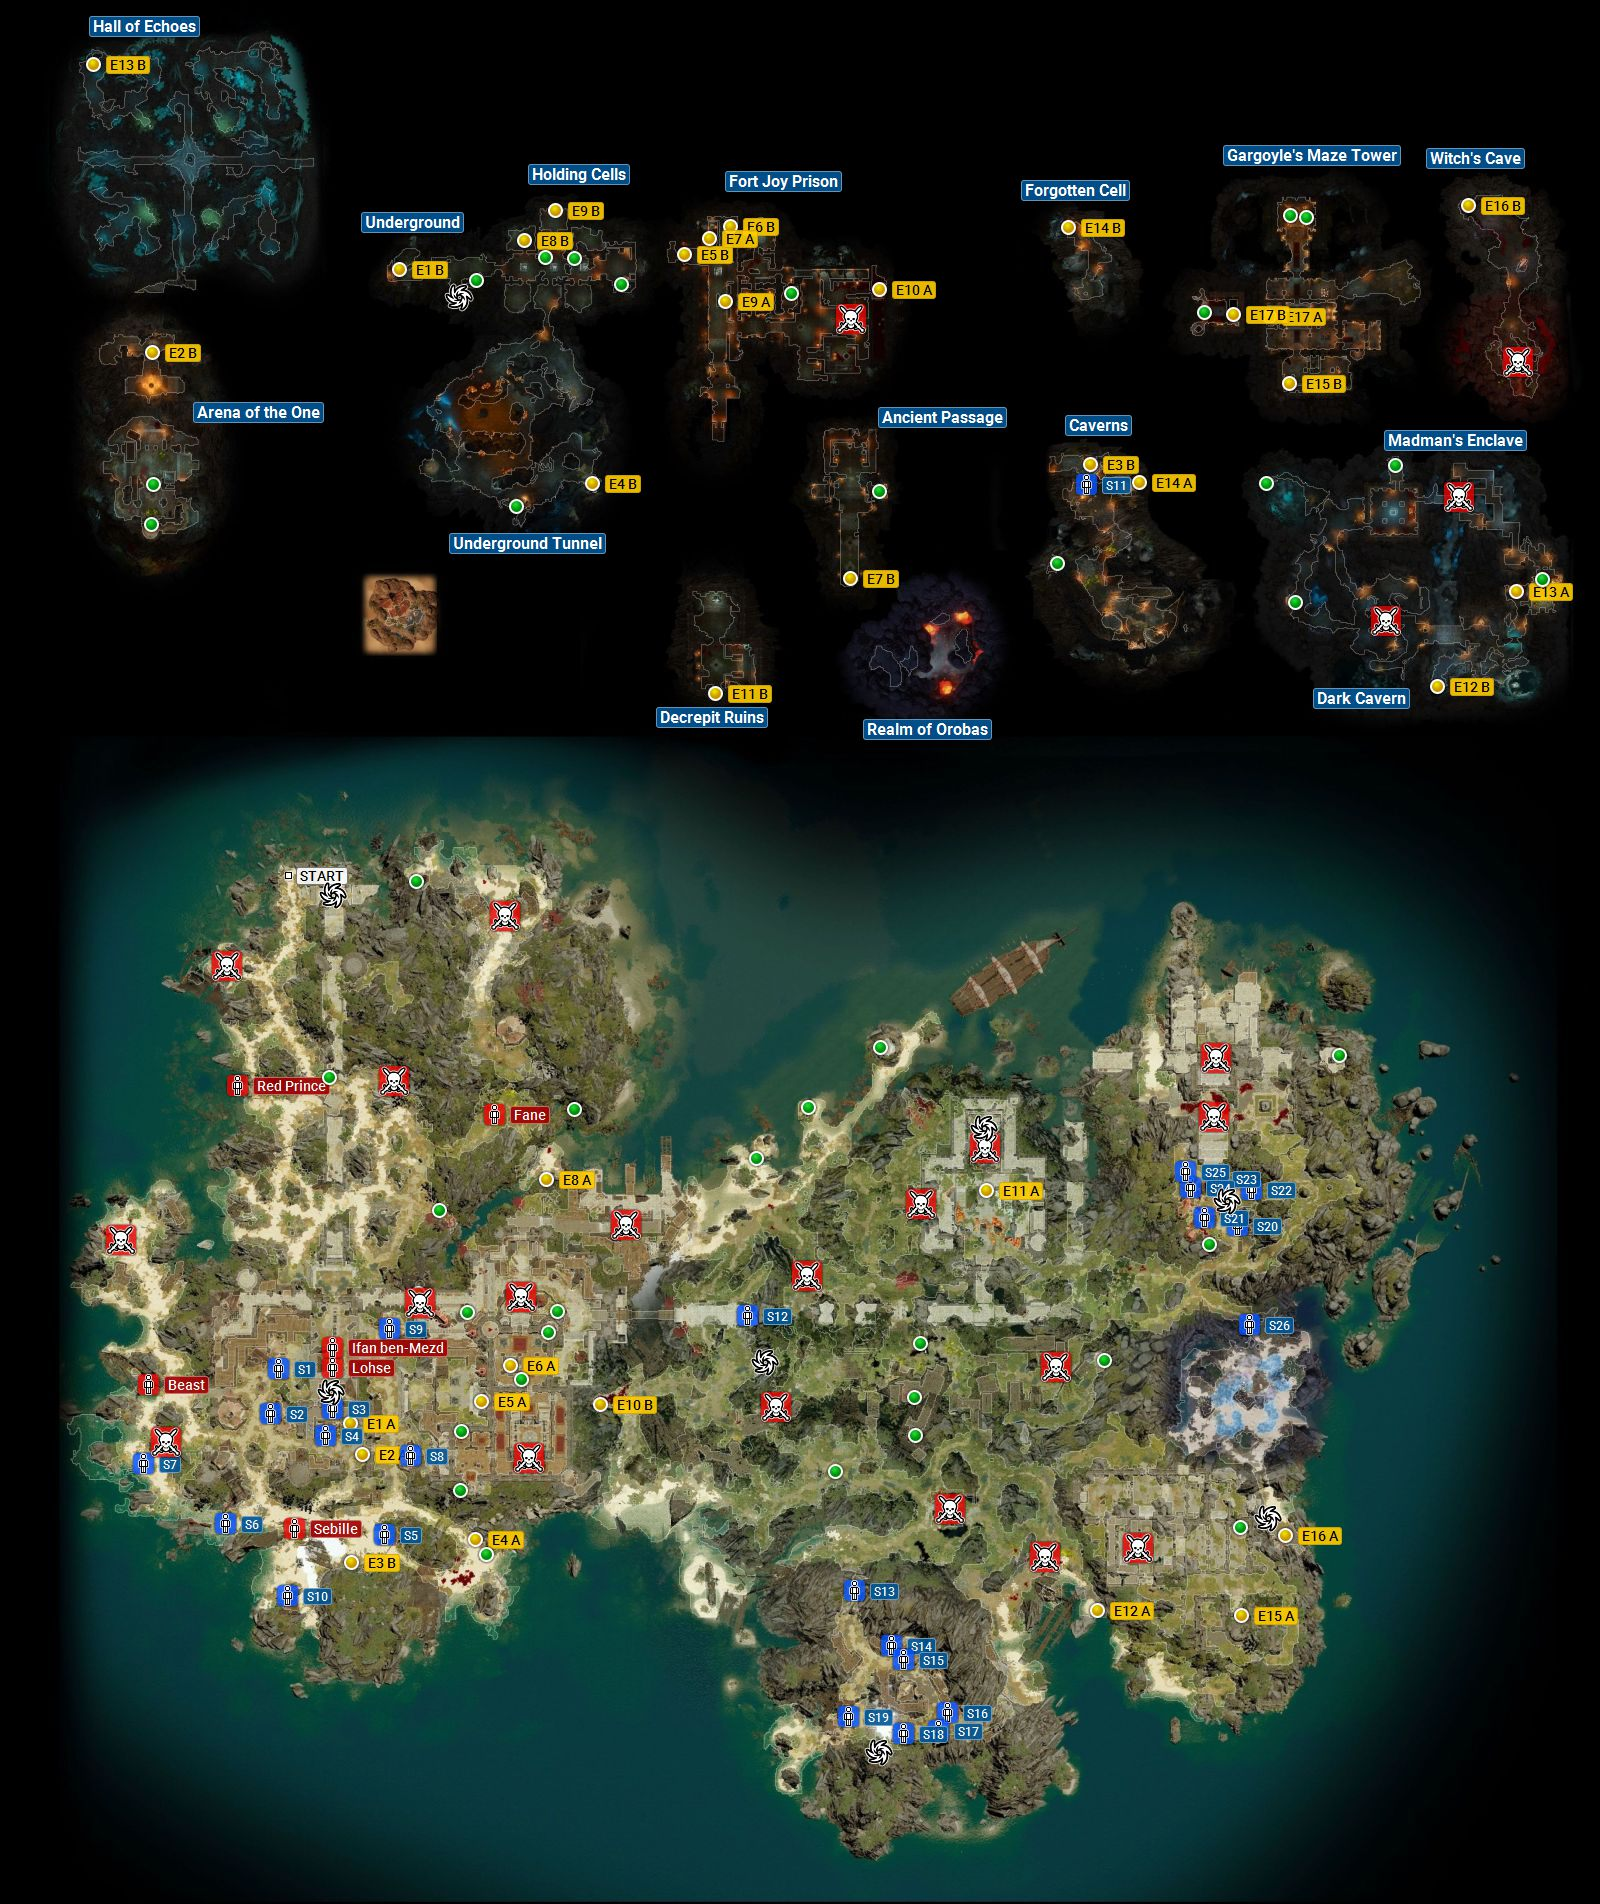 Fort Joy Map Secrets And Treasure Map And Secrets Divinity